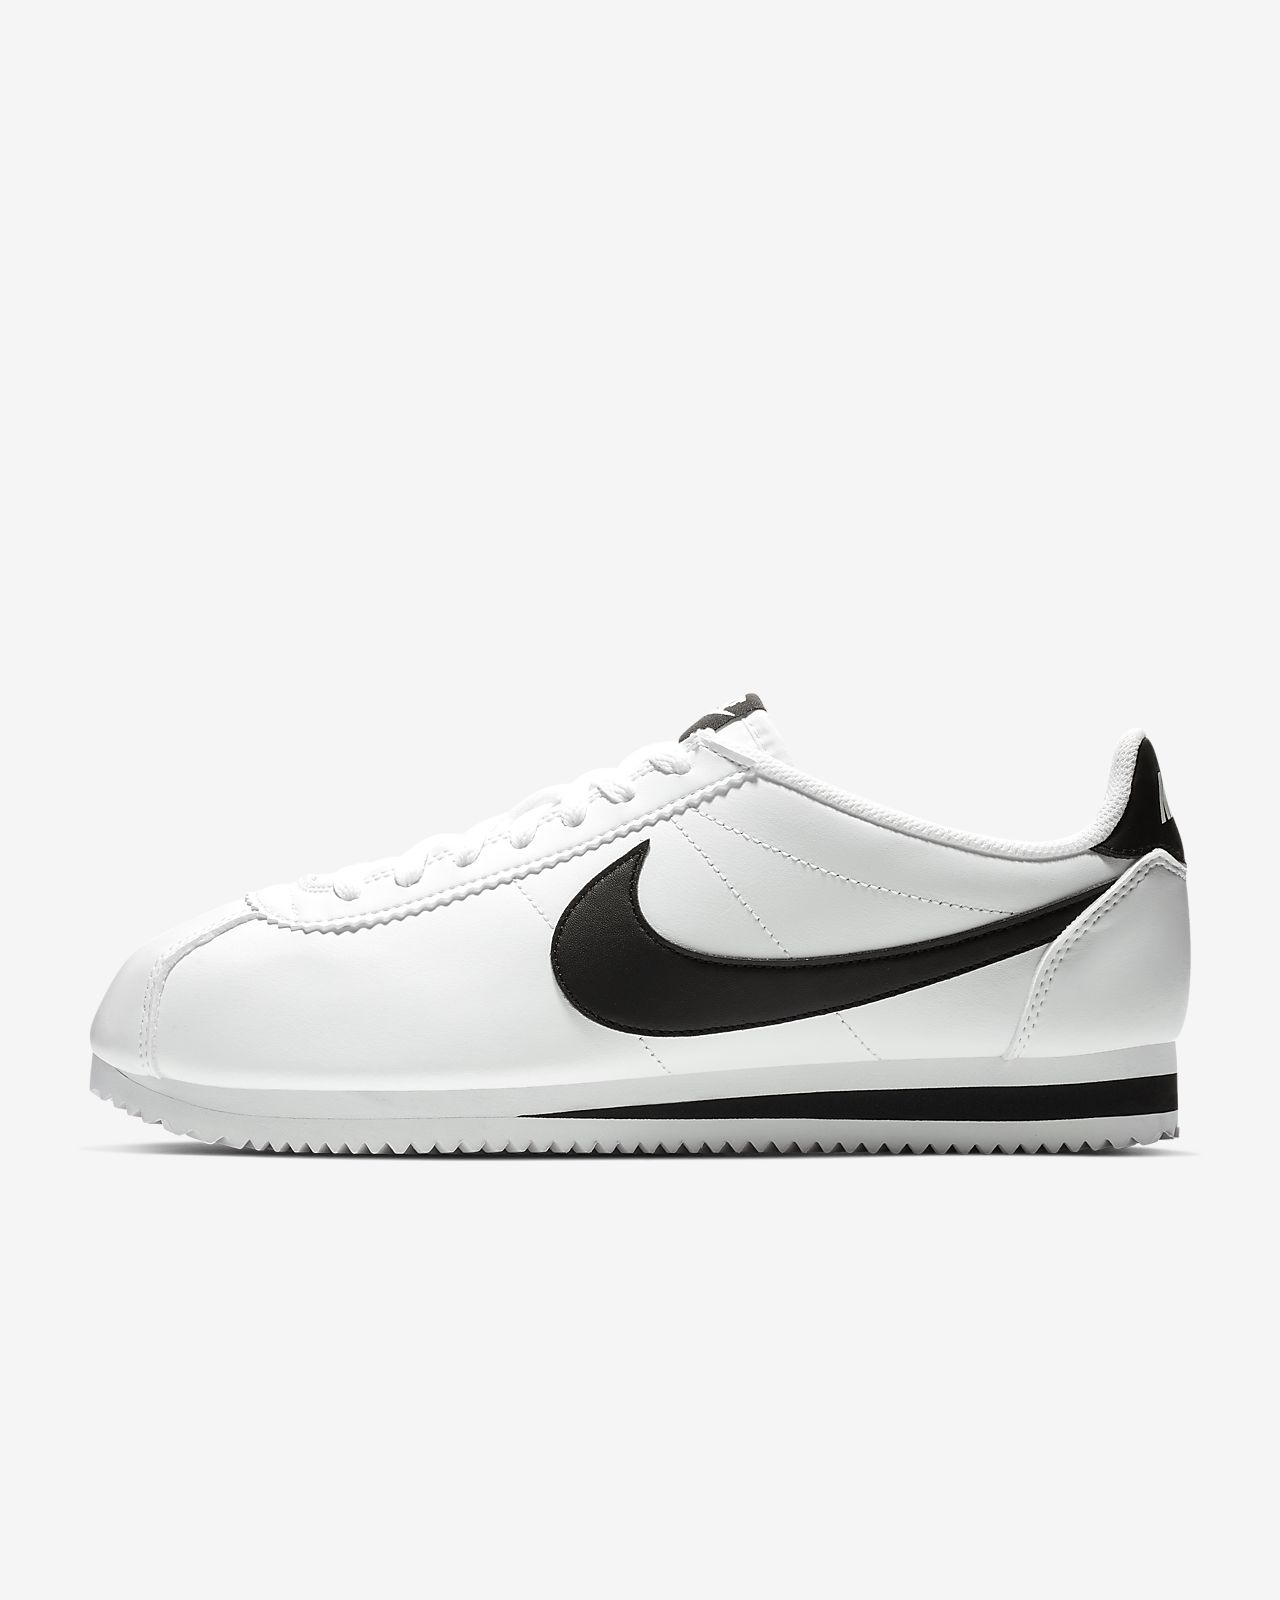 2018 shoes exclusive shoes buying cheap Sapatilhas Nike Classic Cortez para mulher